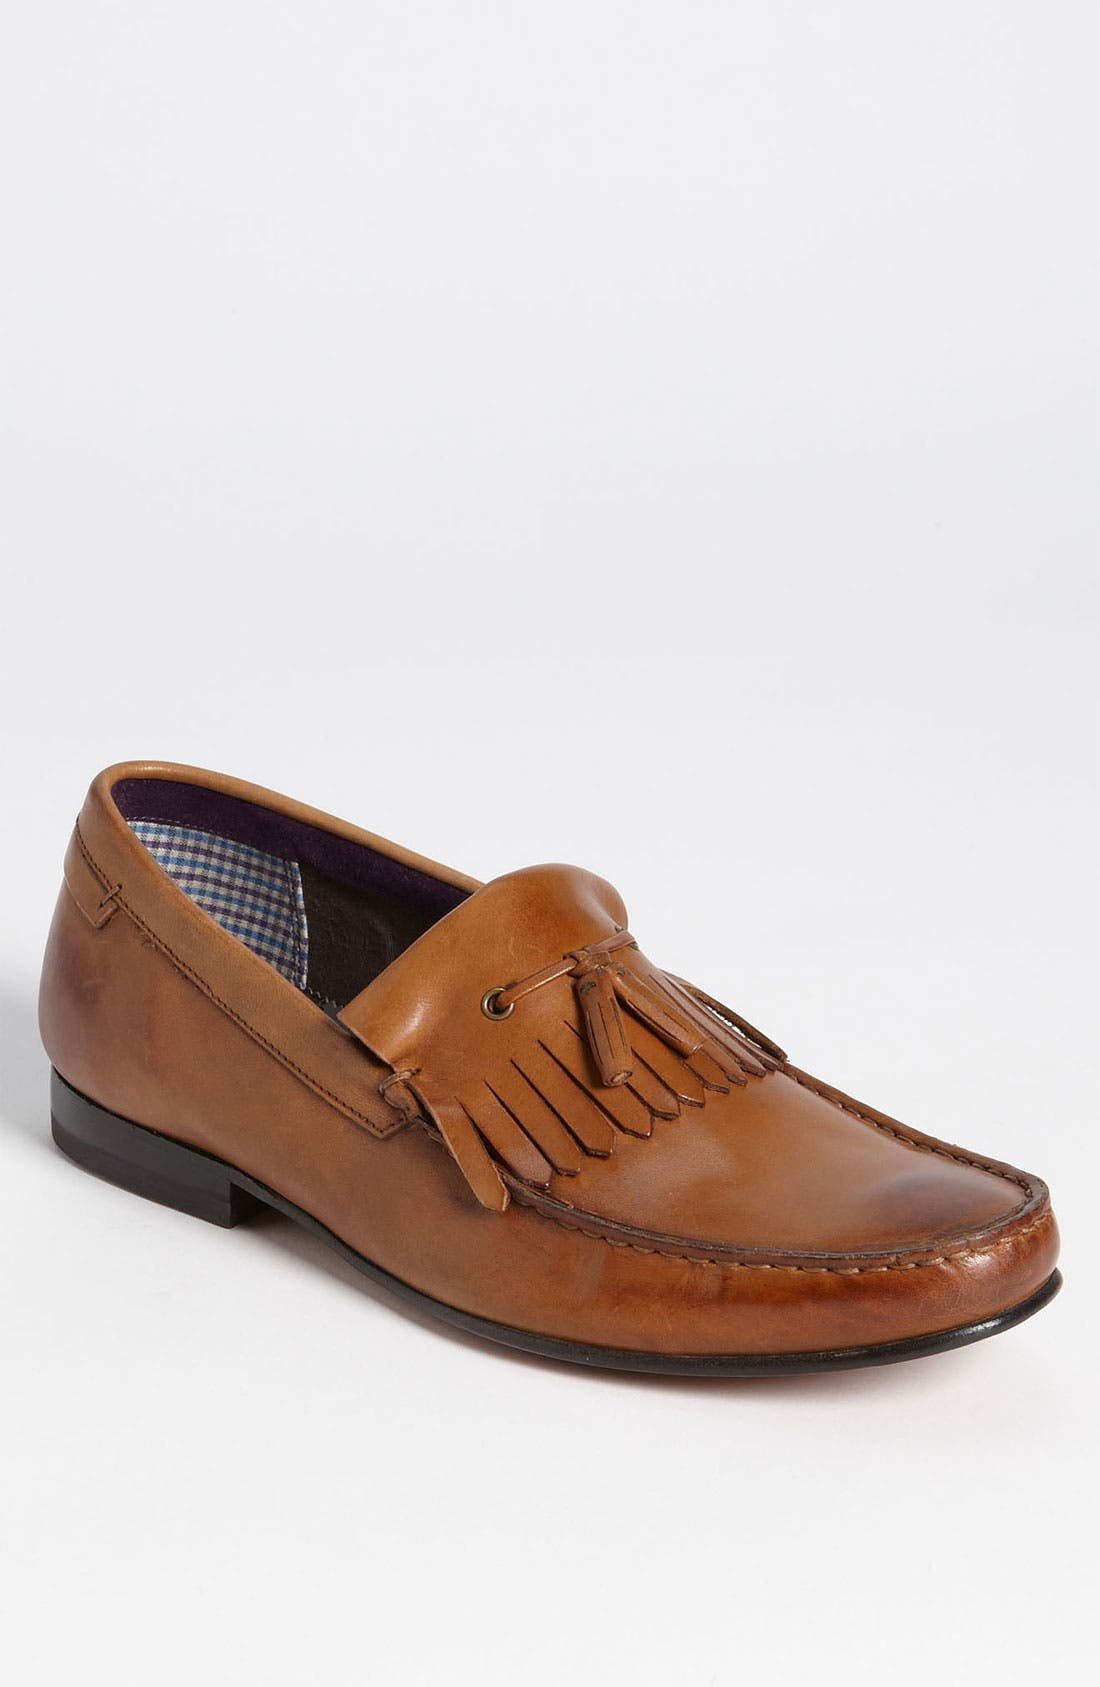 Main Image - Ted Baker London 'Tephra 3' Kiltie Loafer